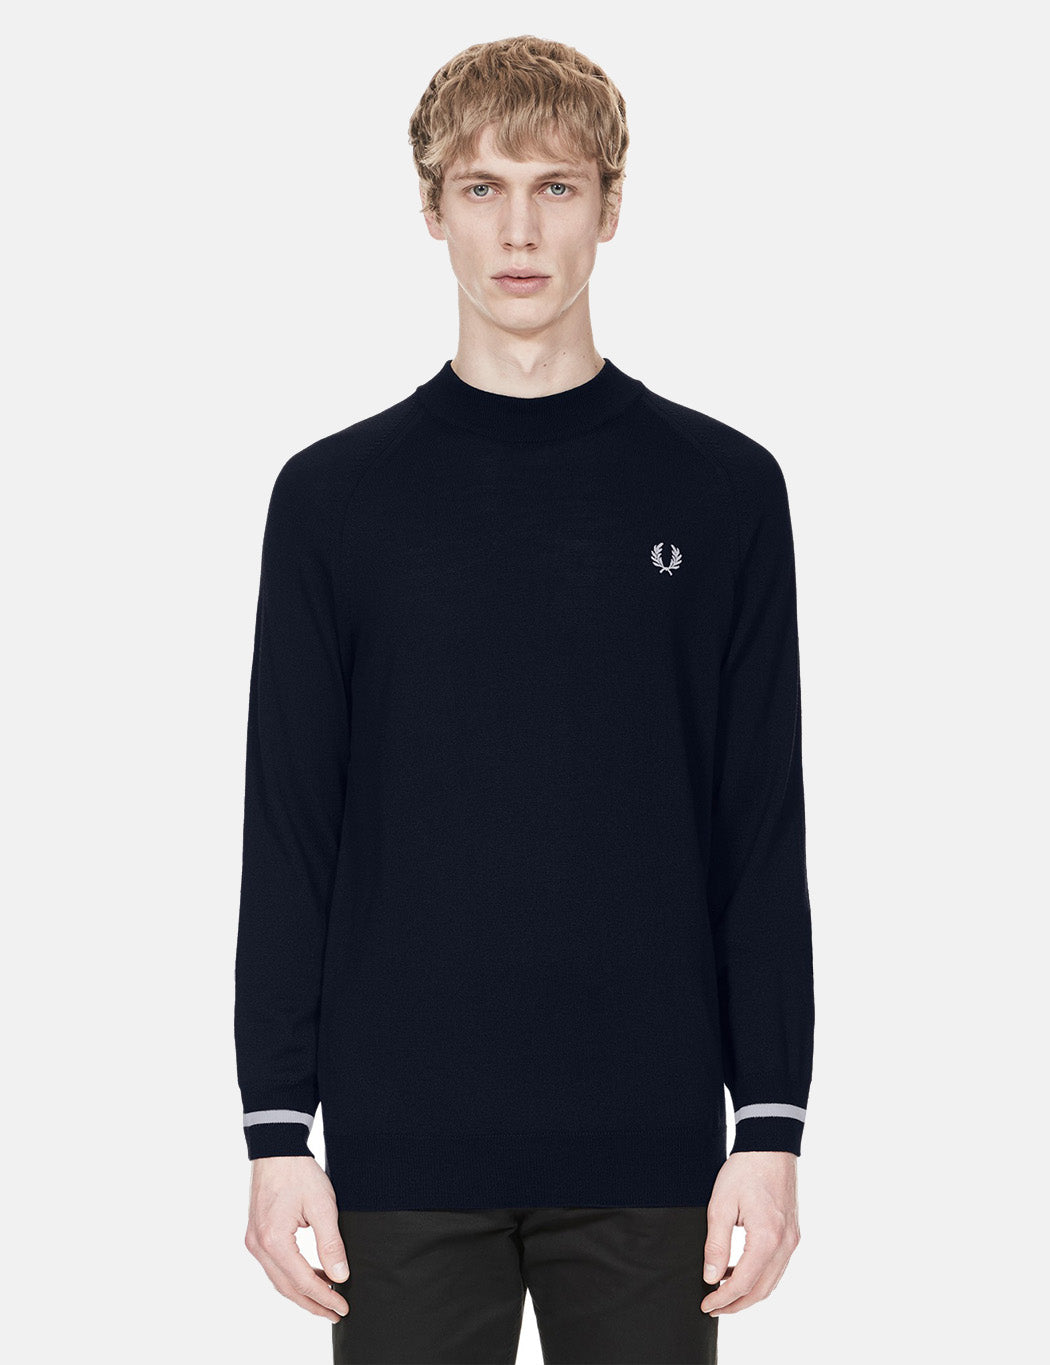 Fred Perry Turtle Neck Knit Jumper - Navy Blue